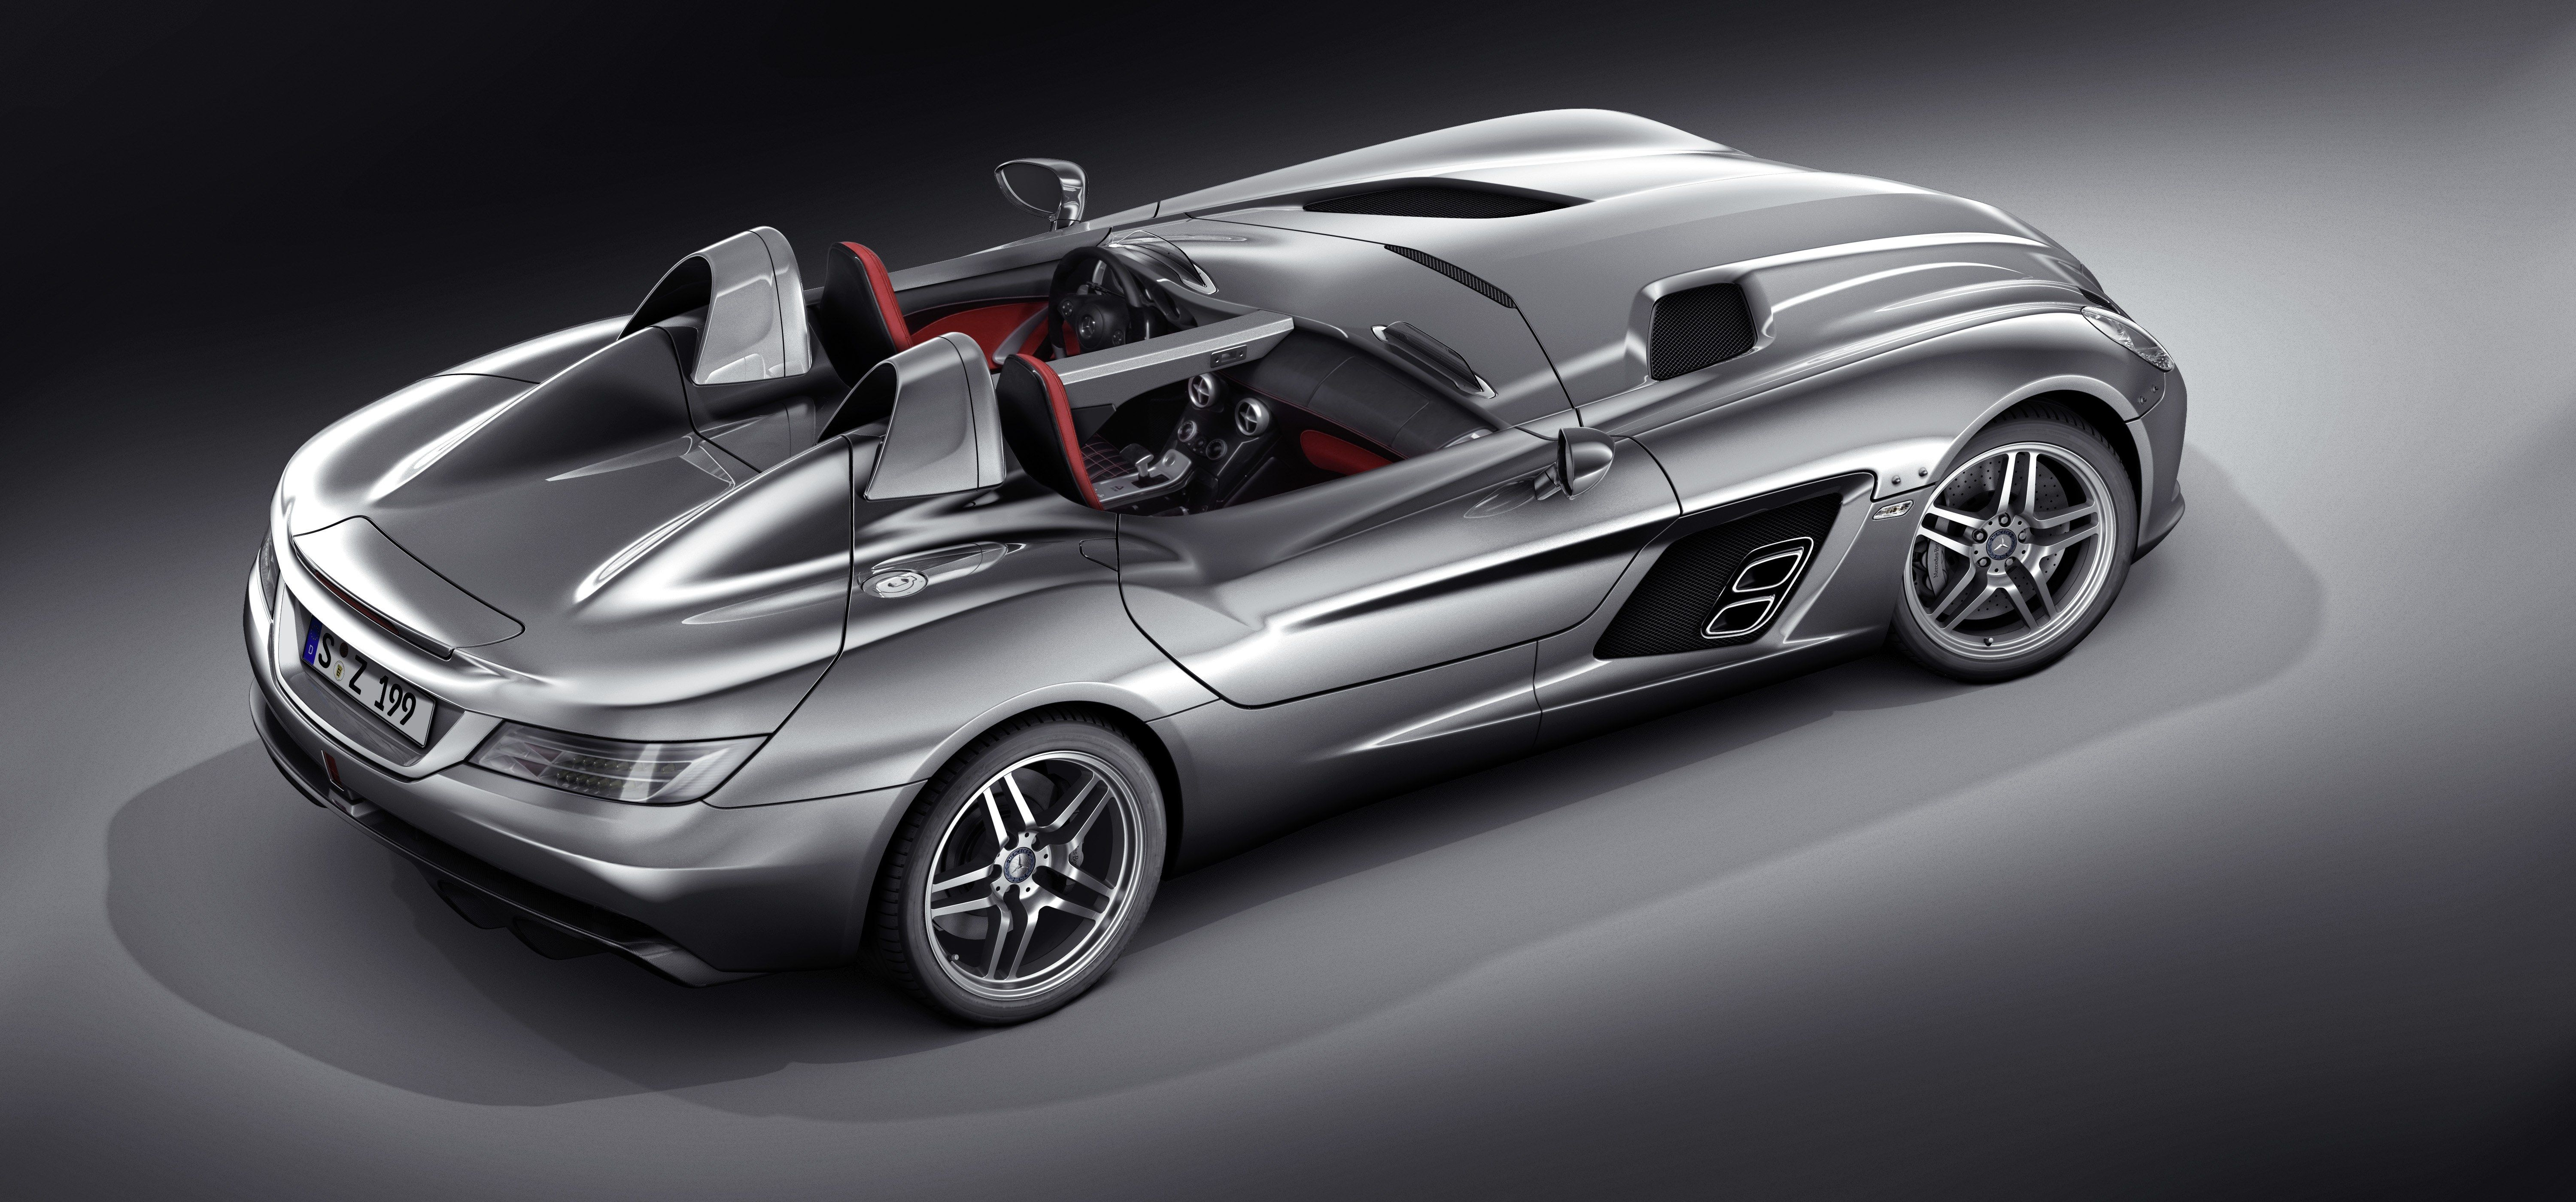 Mercedes Mclaren Slr Stirling Moss This Car Is Just Pure